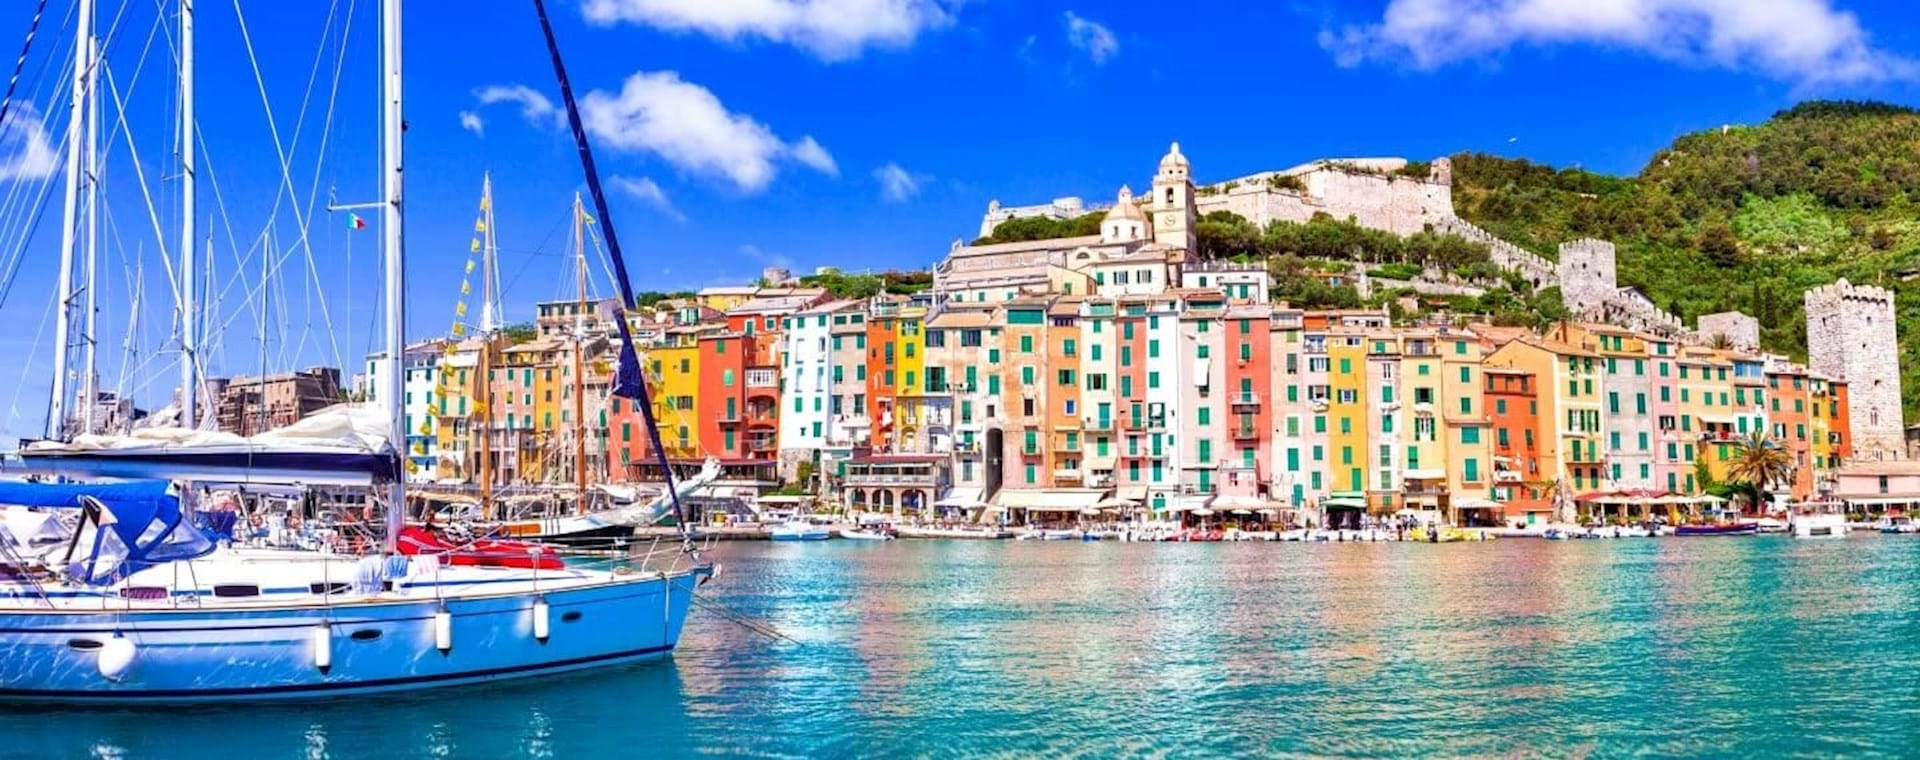 Day Trip: Cinque Terre & Portovenere from Florence